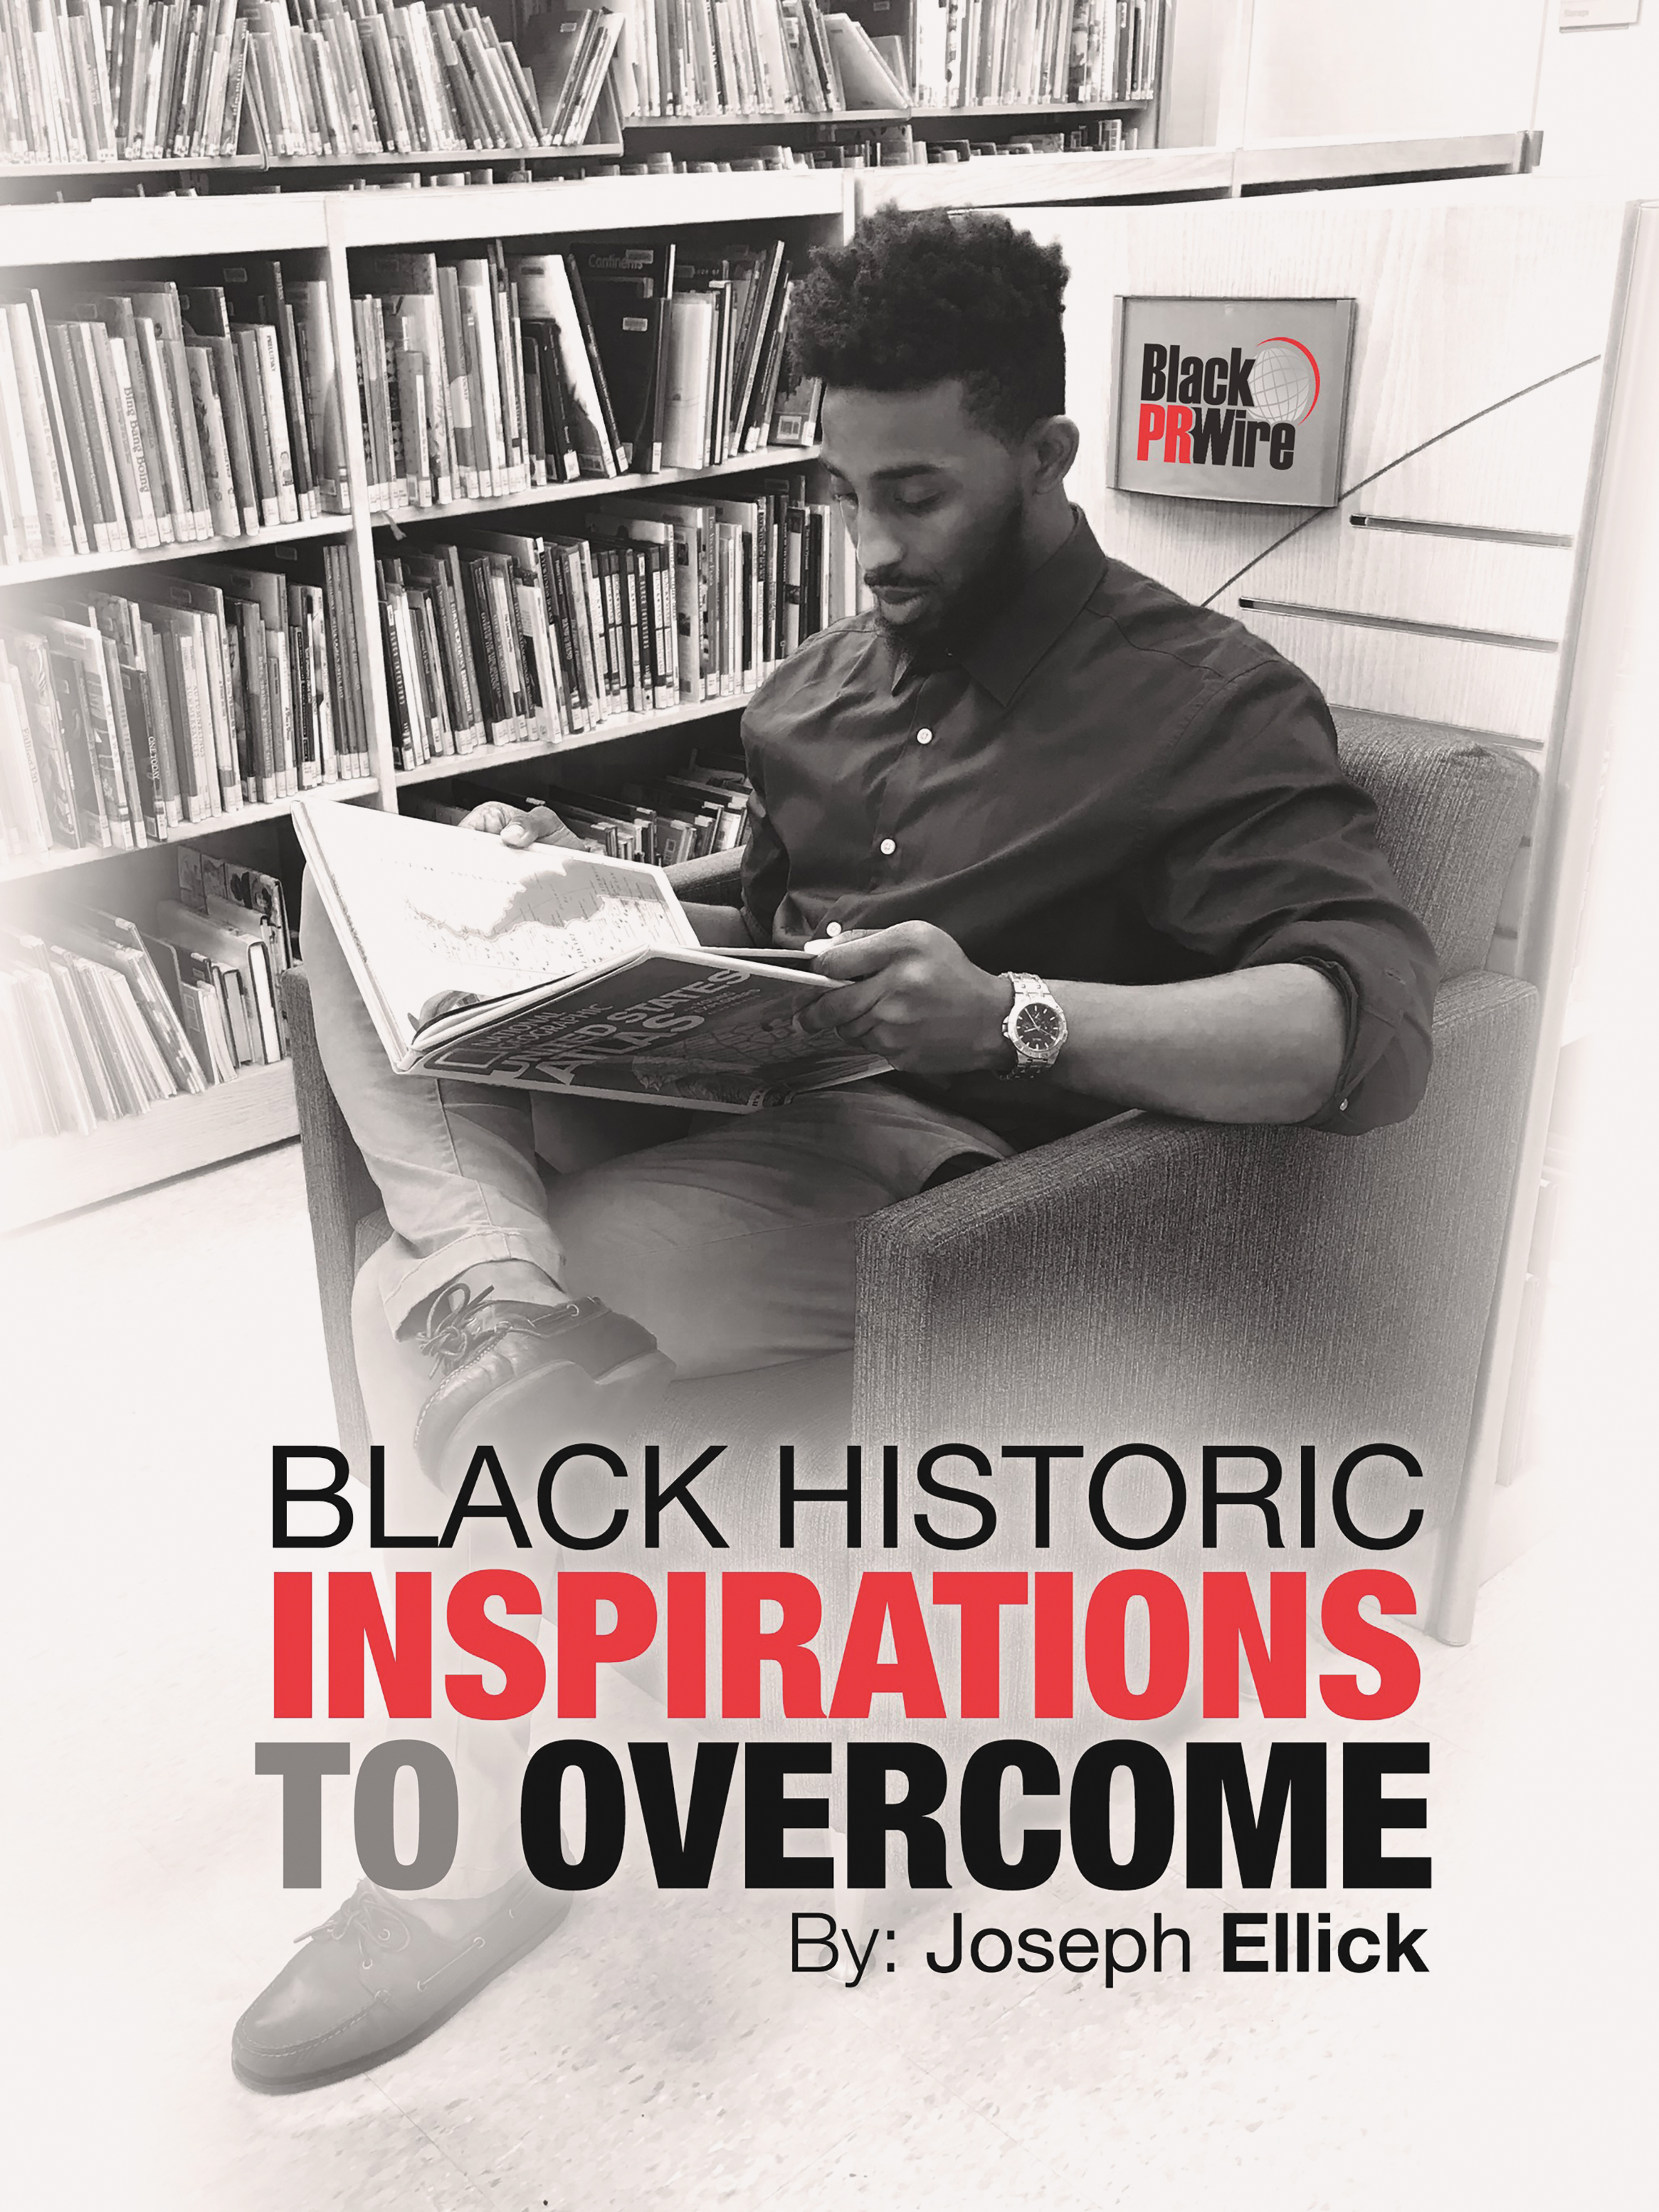 Black Historic Inspirations to Overcome pic.jpg